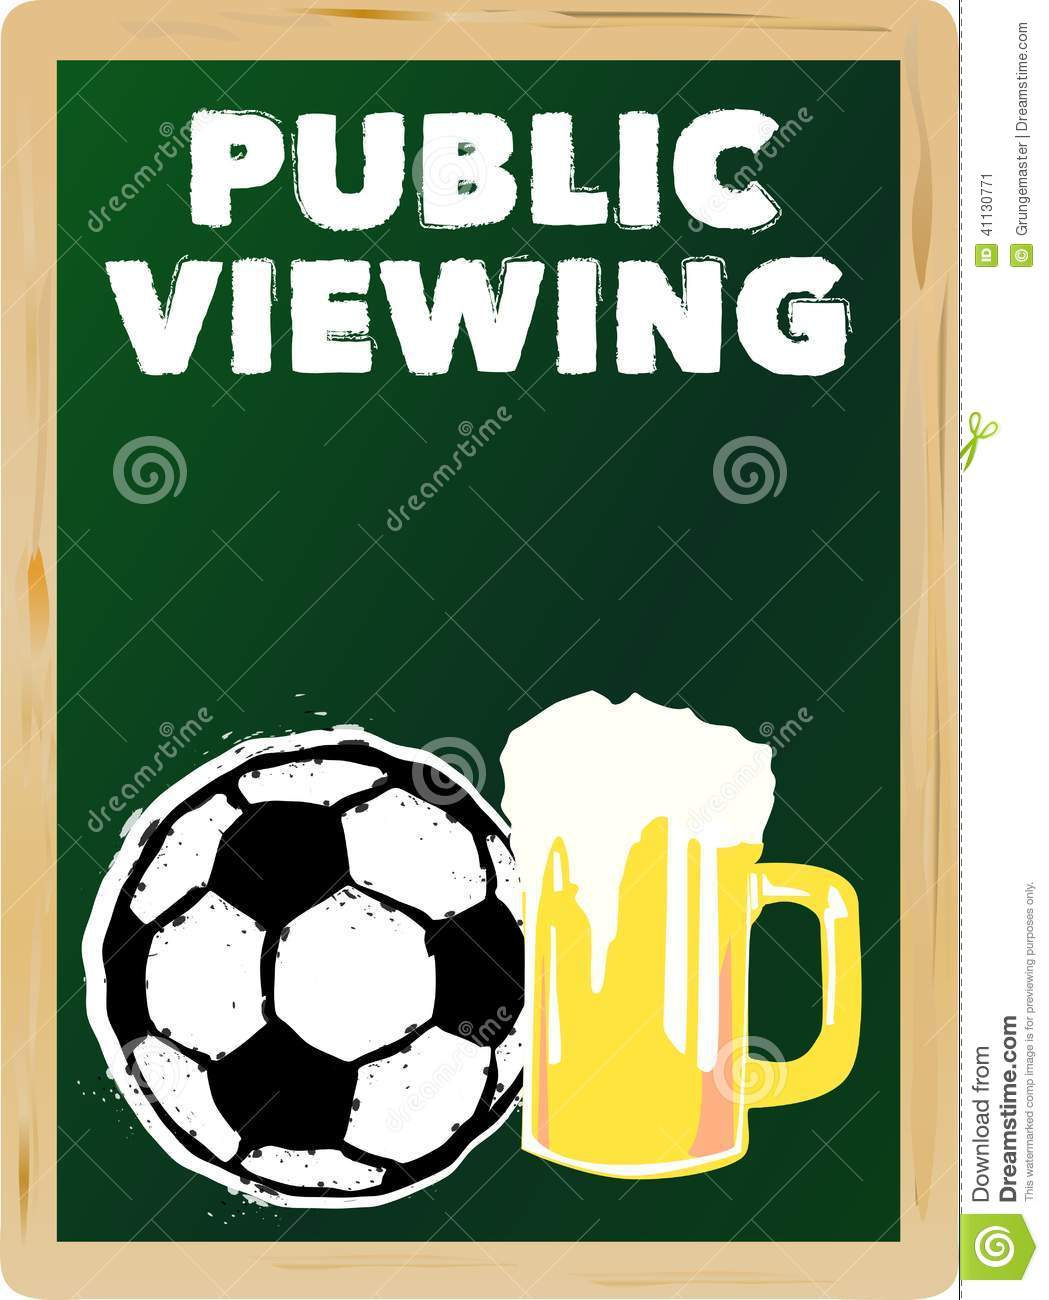 Soccer public viewing,